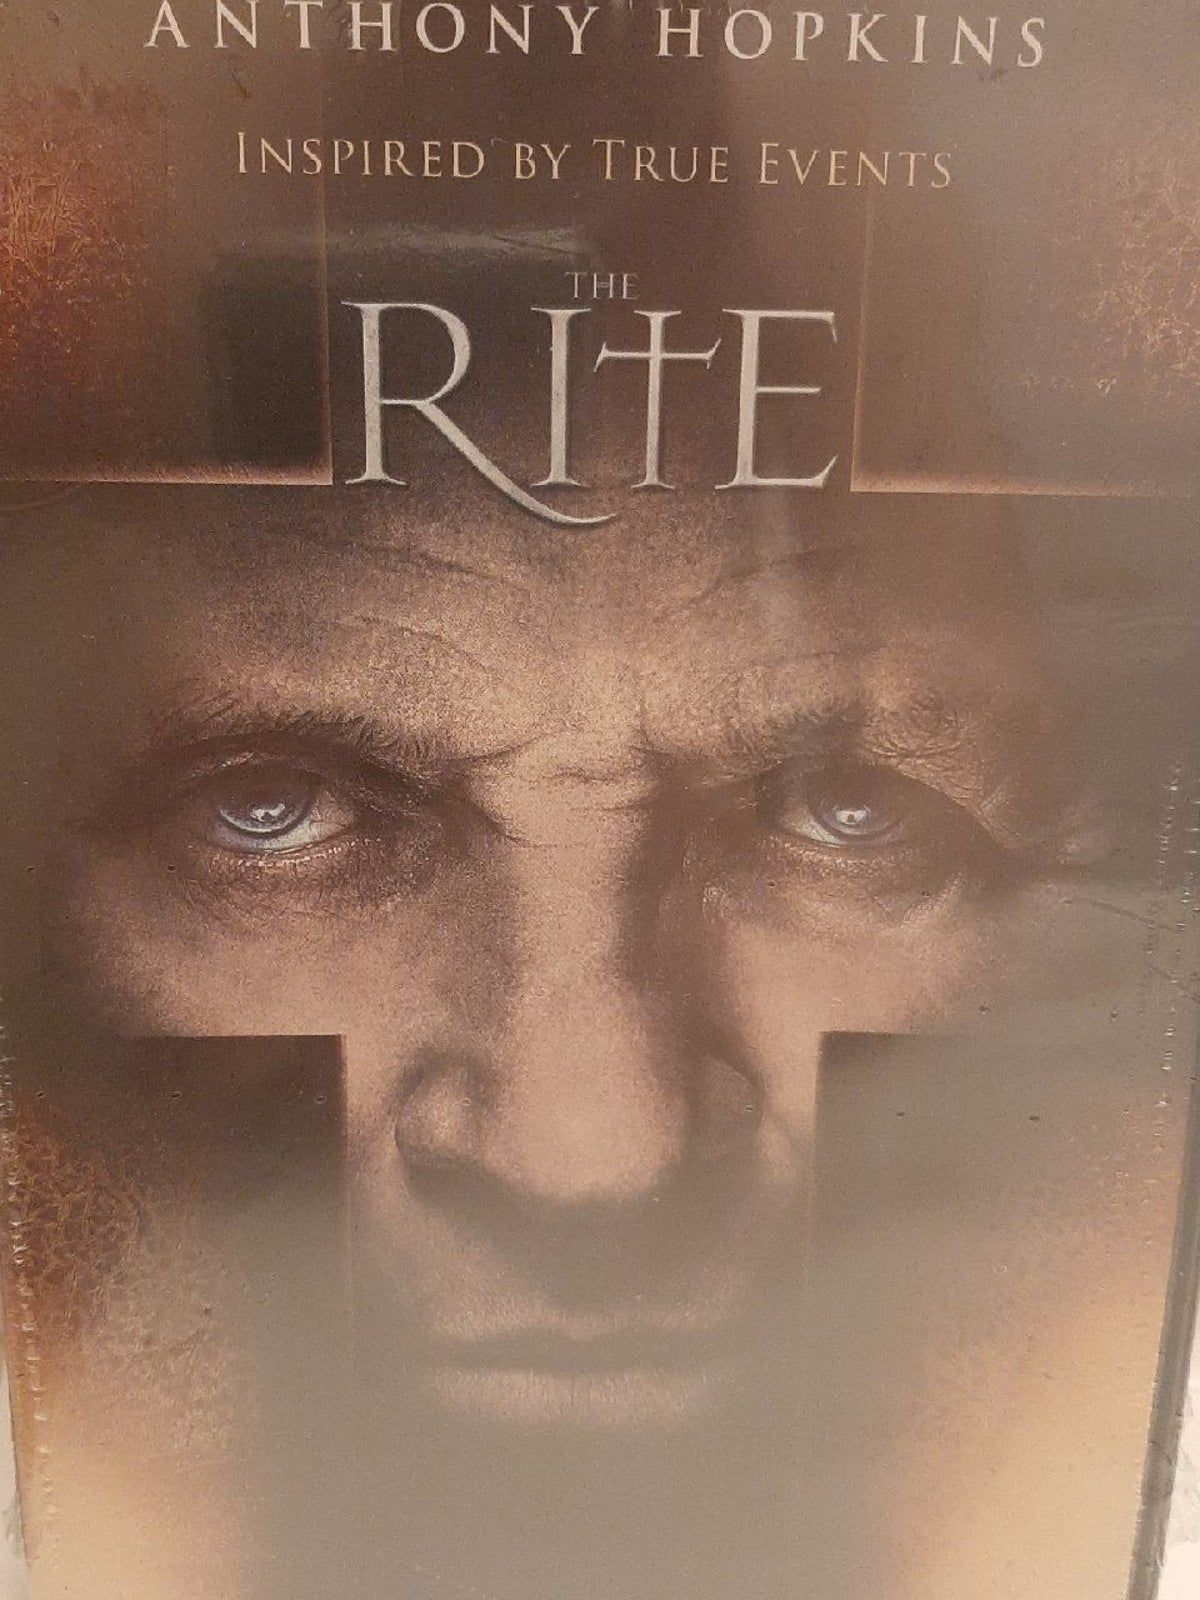 The Rite DVD in 2020 Anthony hopkins, The rite, Anthony